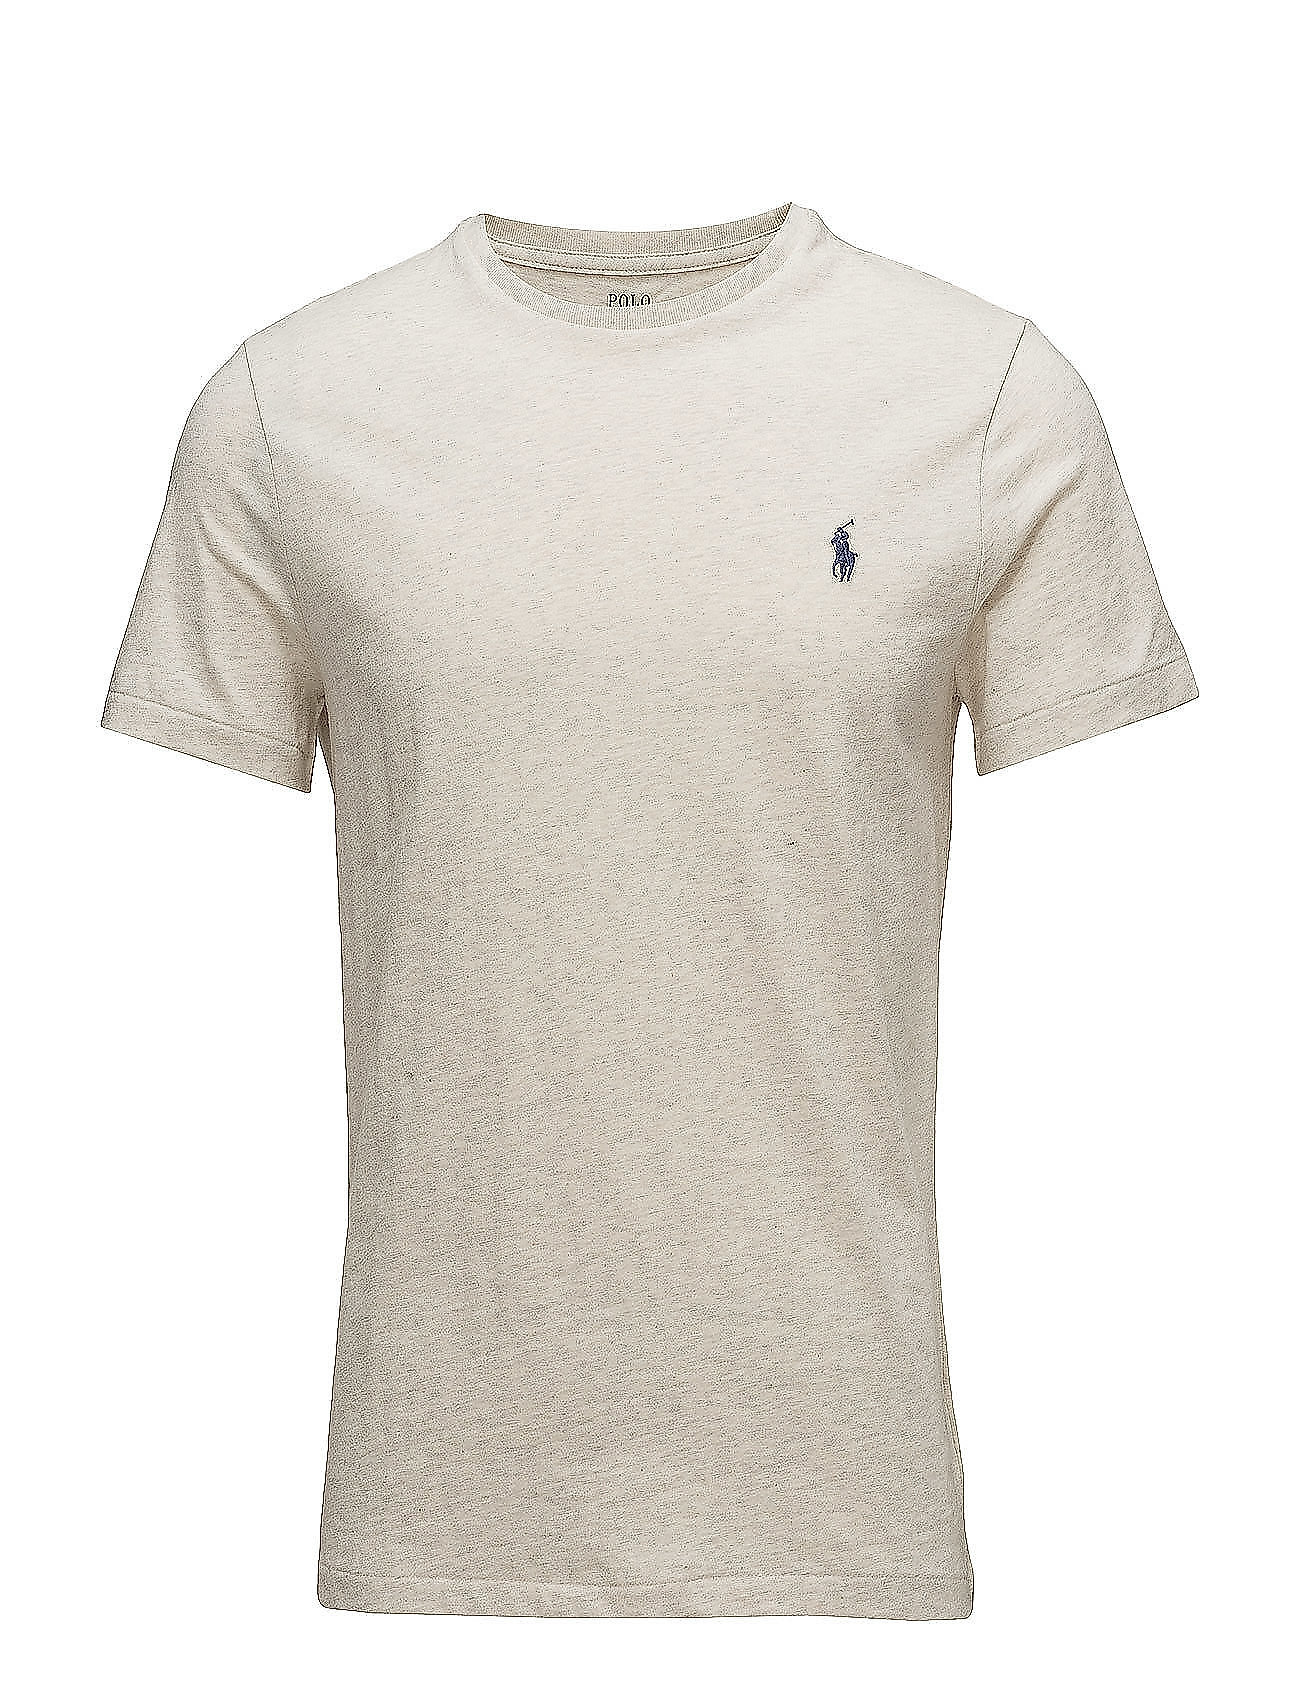 Custom slim fit cotton t shirt new sand heather 49 for Polo custom fit t shirts